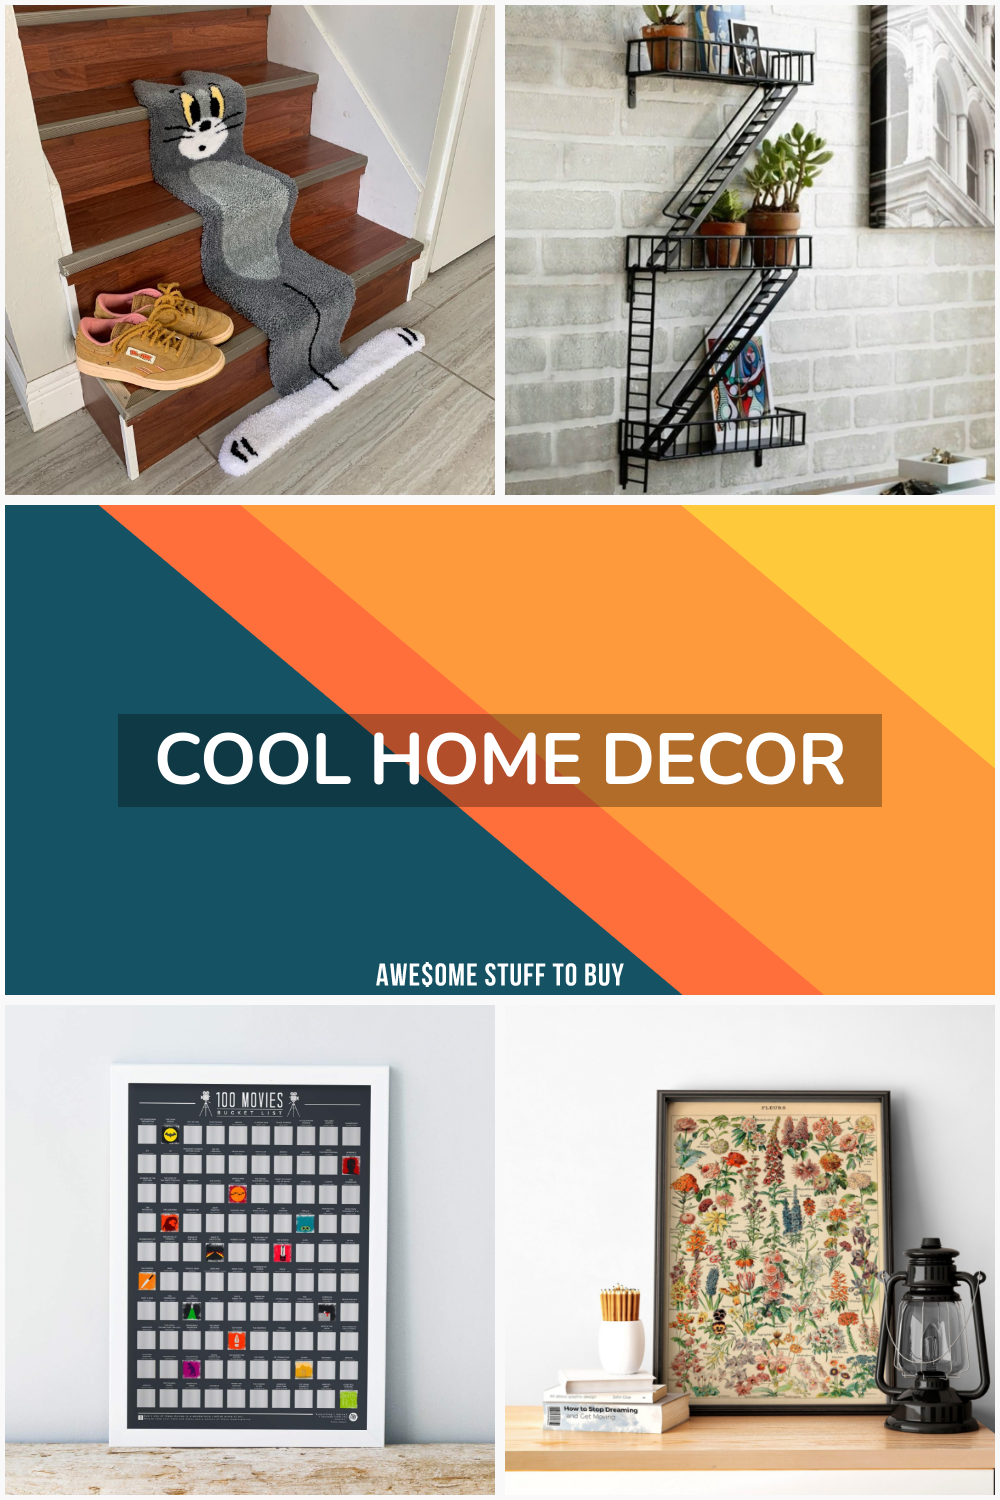 Cool Home Decor // Awesome Stuff to Buy